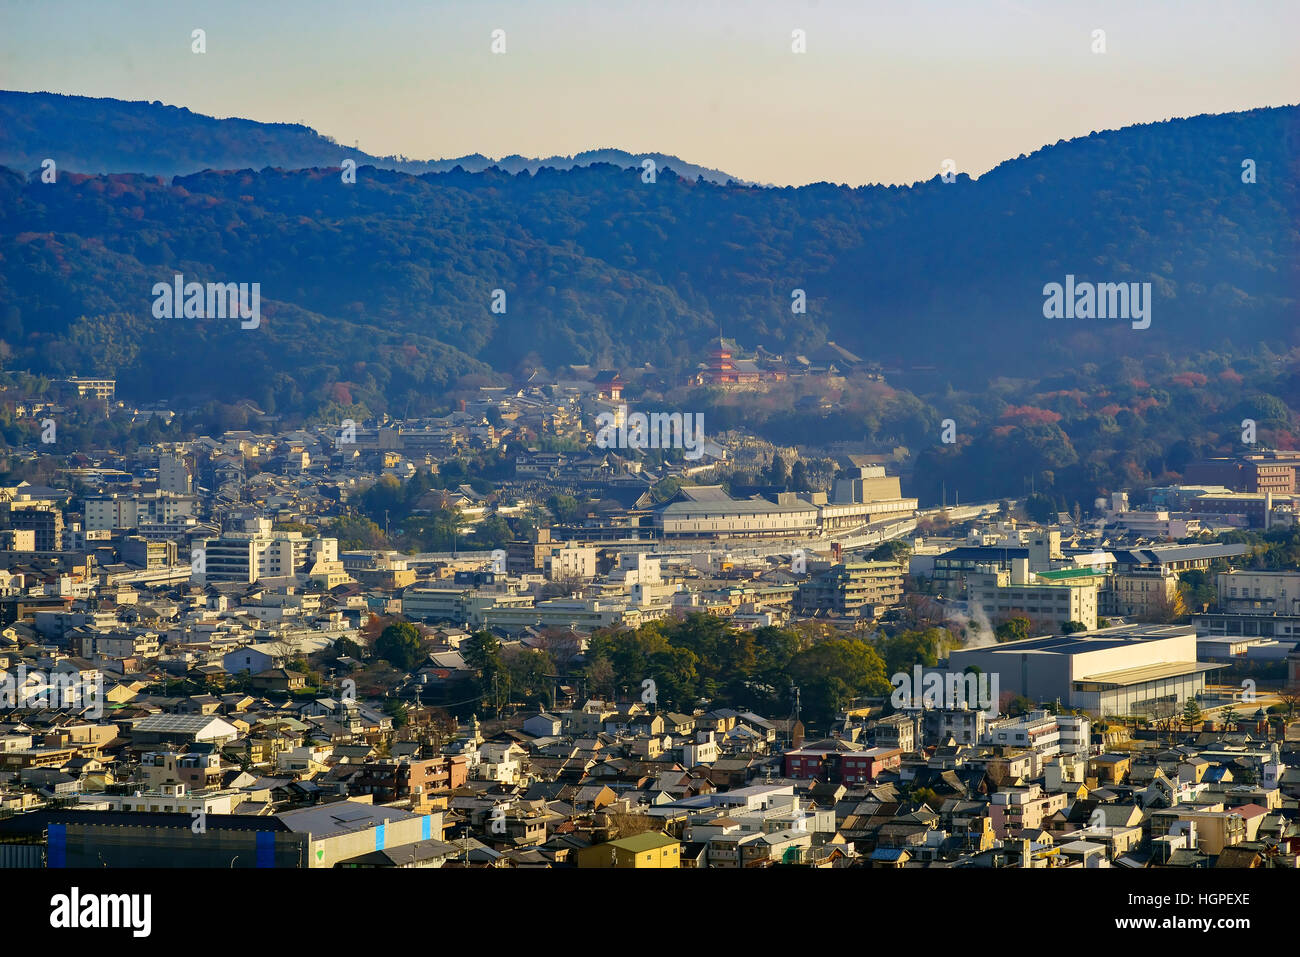 Aerial view of Kyoto downtown cityscape on Kyoto Tower, Japan Stock Photo